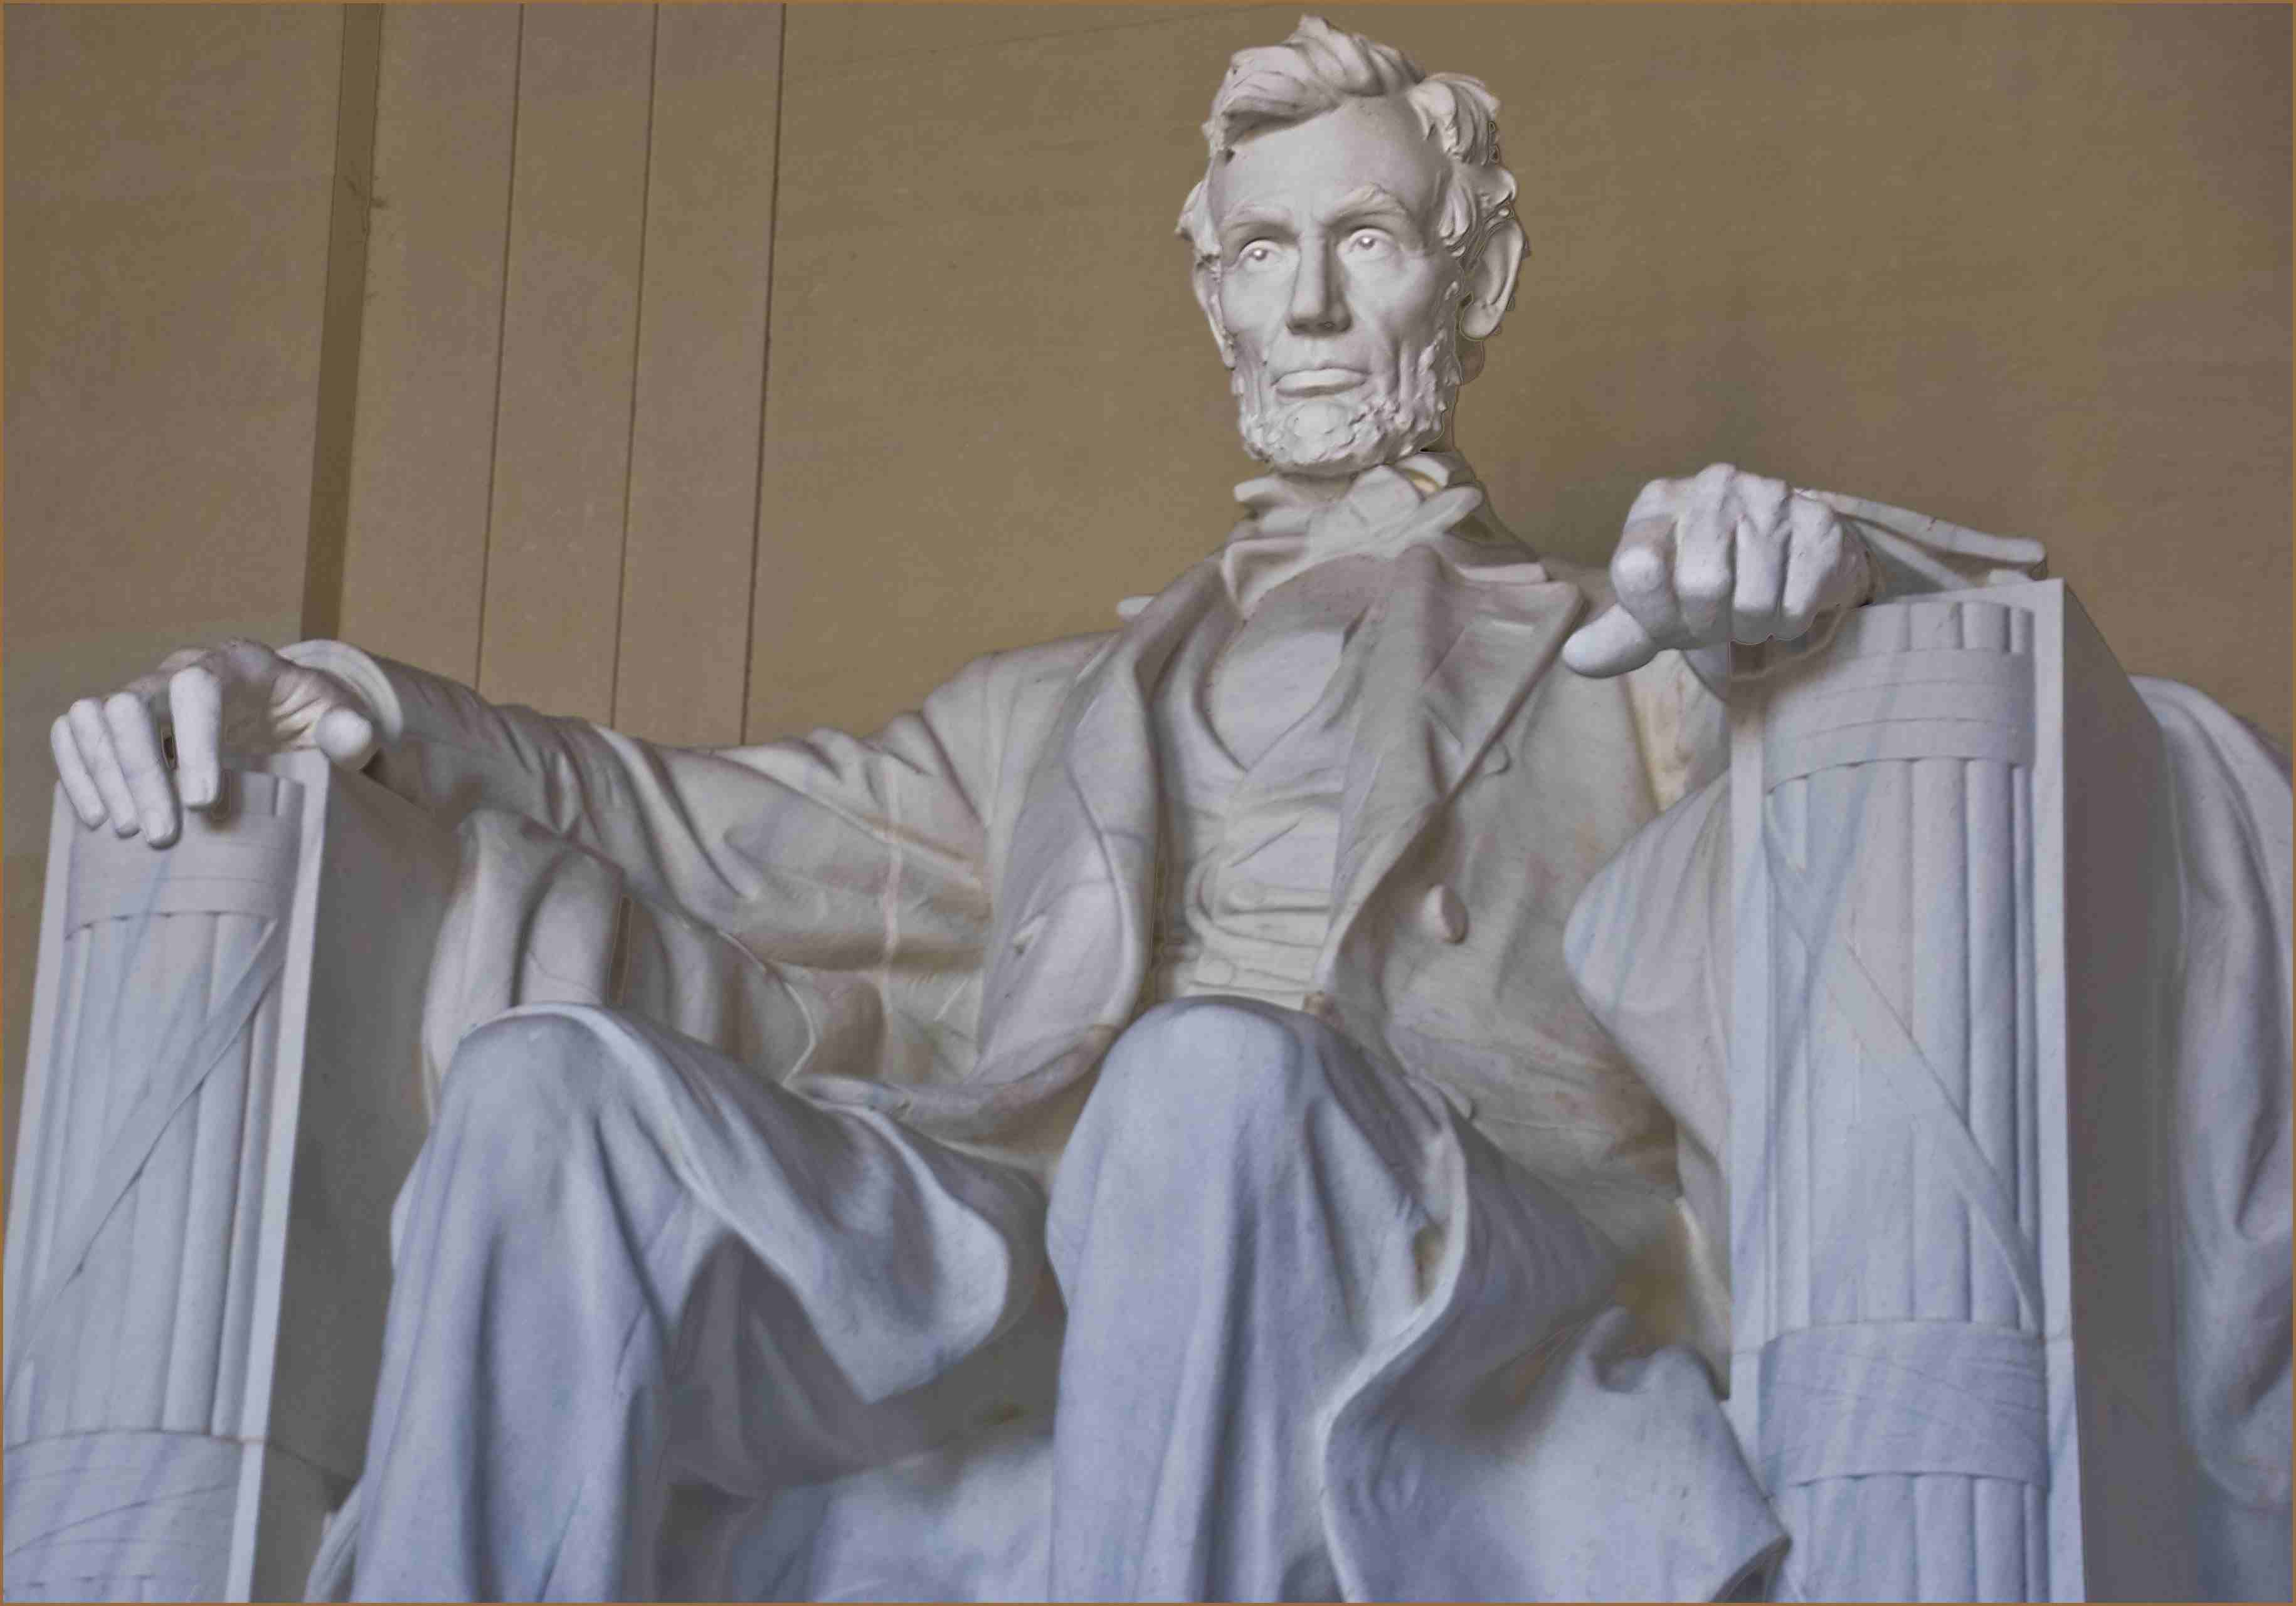 Abraham Lincoln statue at the memorial in DC